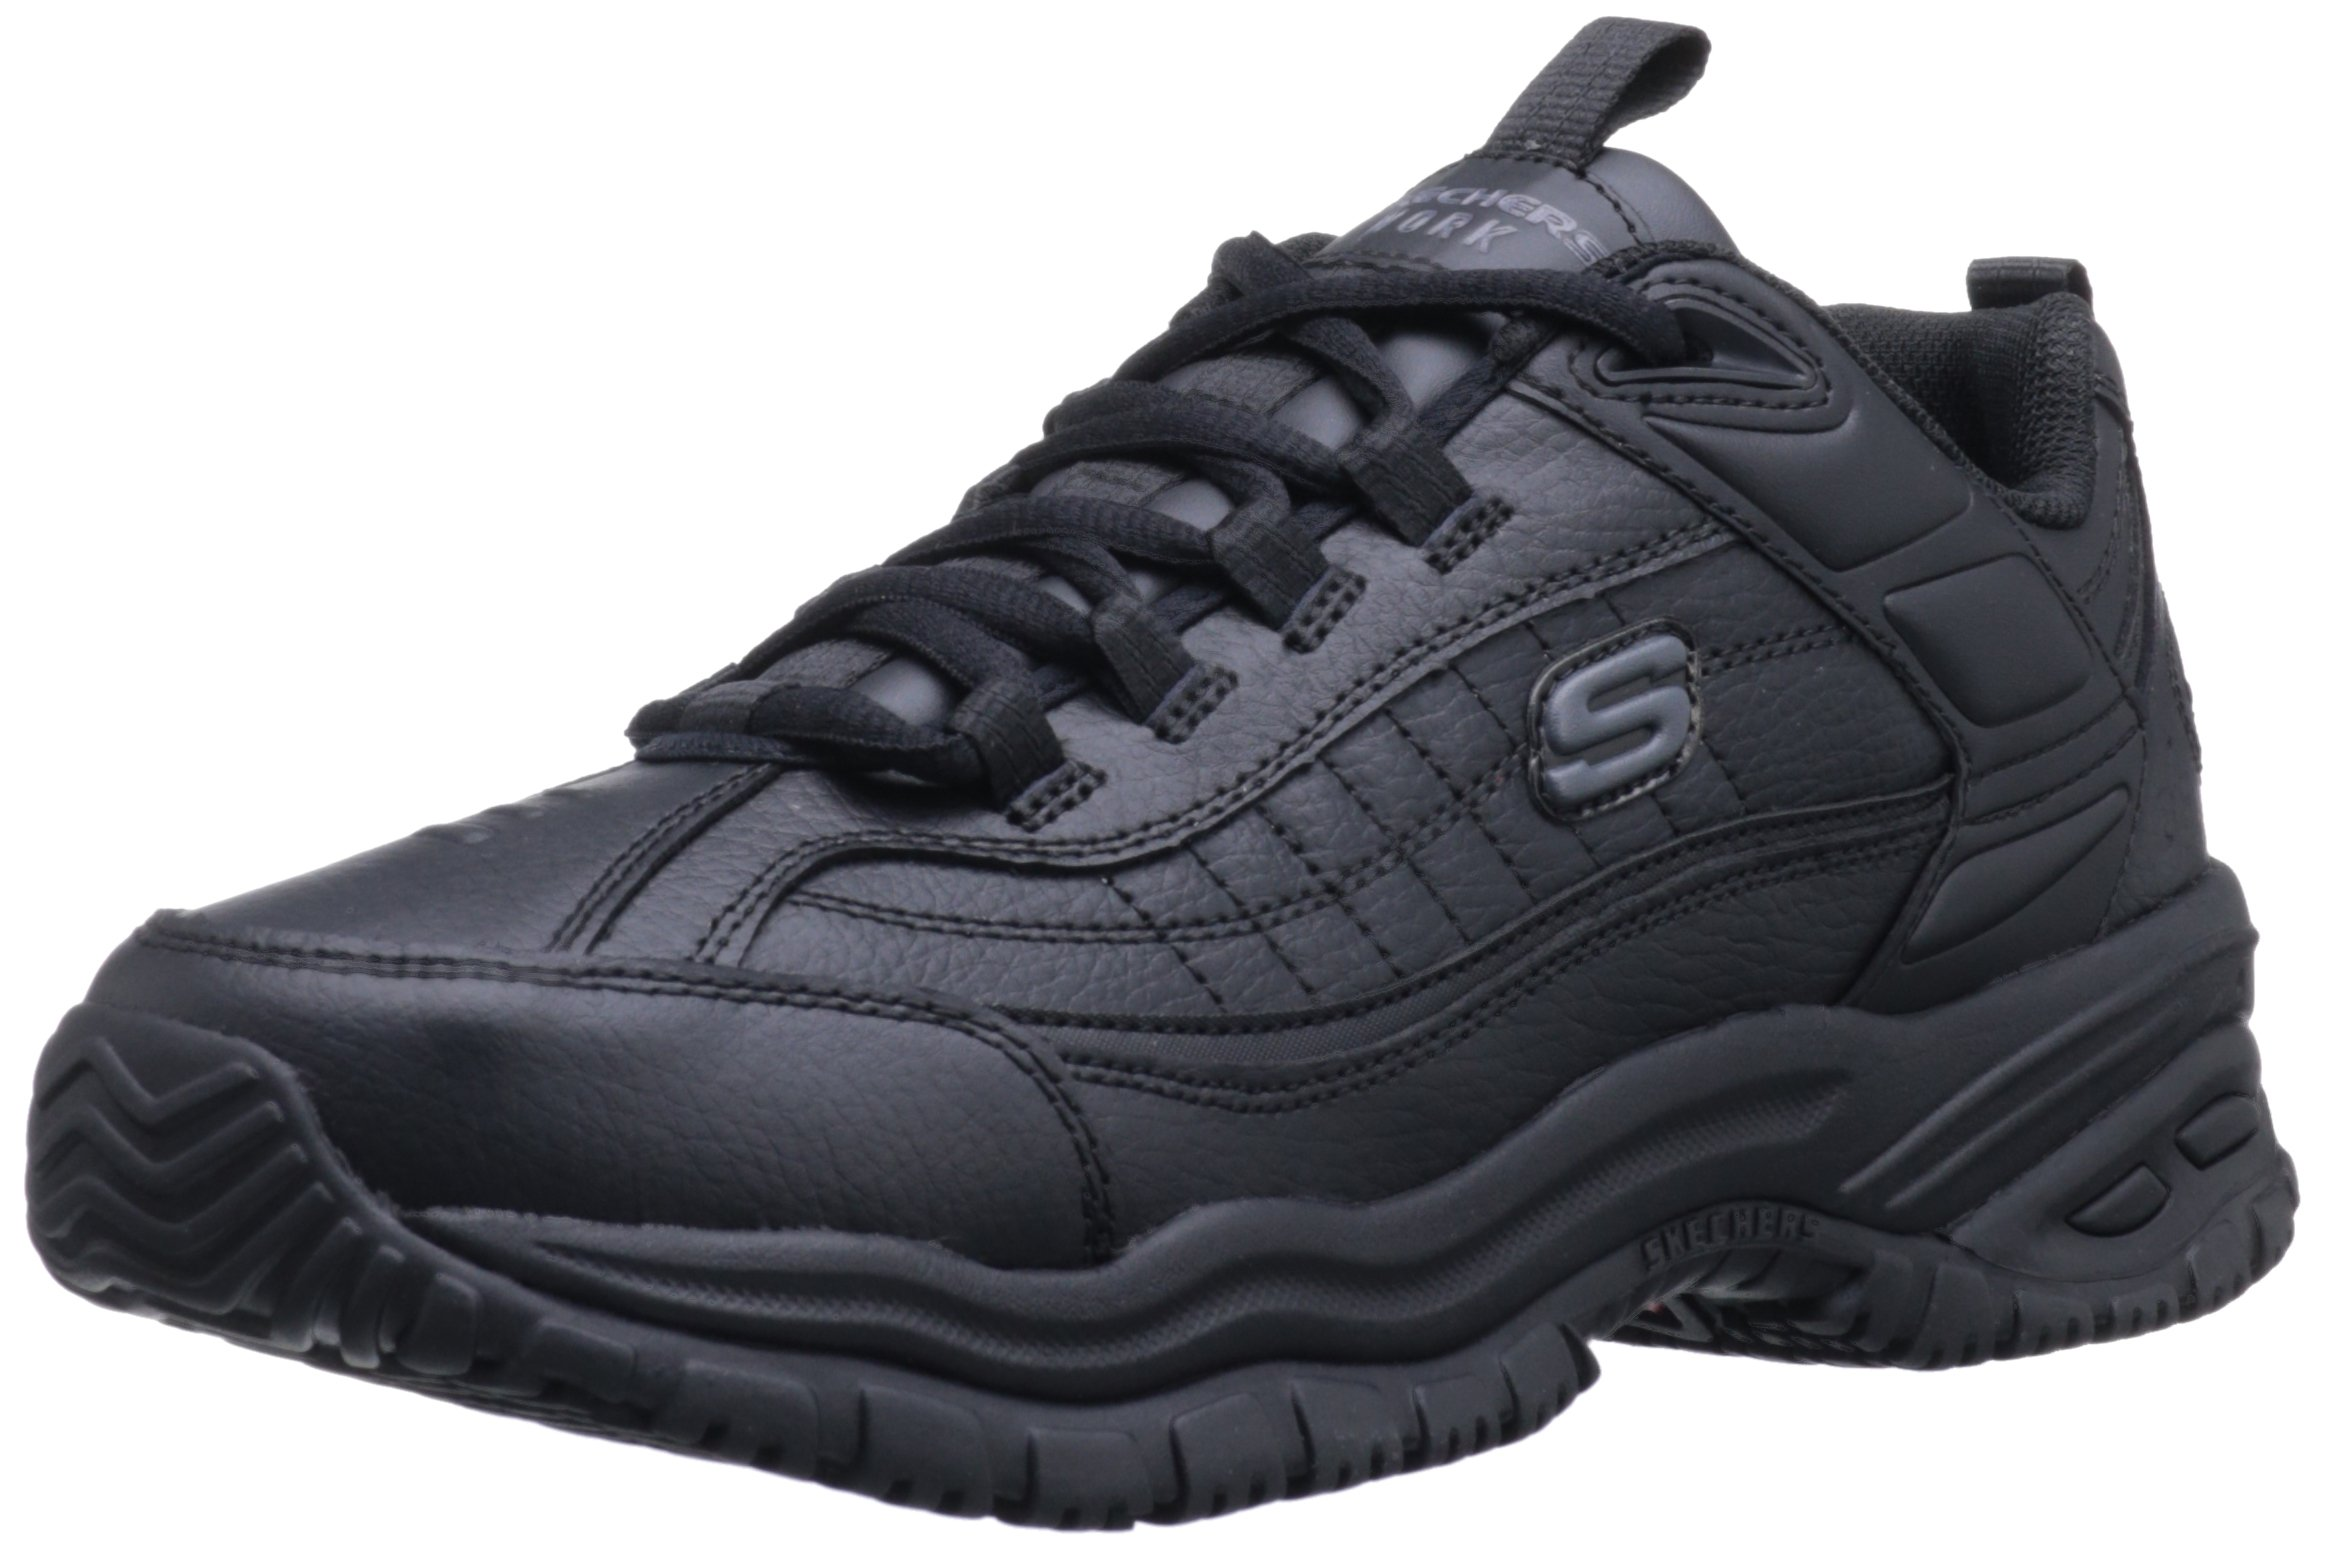 Skechers for Work Men's Soft Stride Galley, Black, 9.5 D(M) US